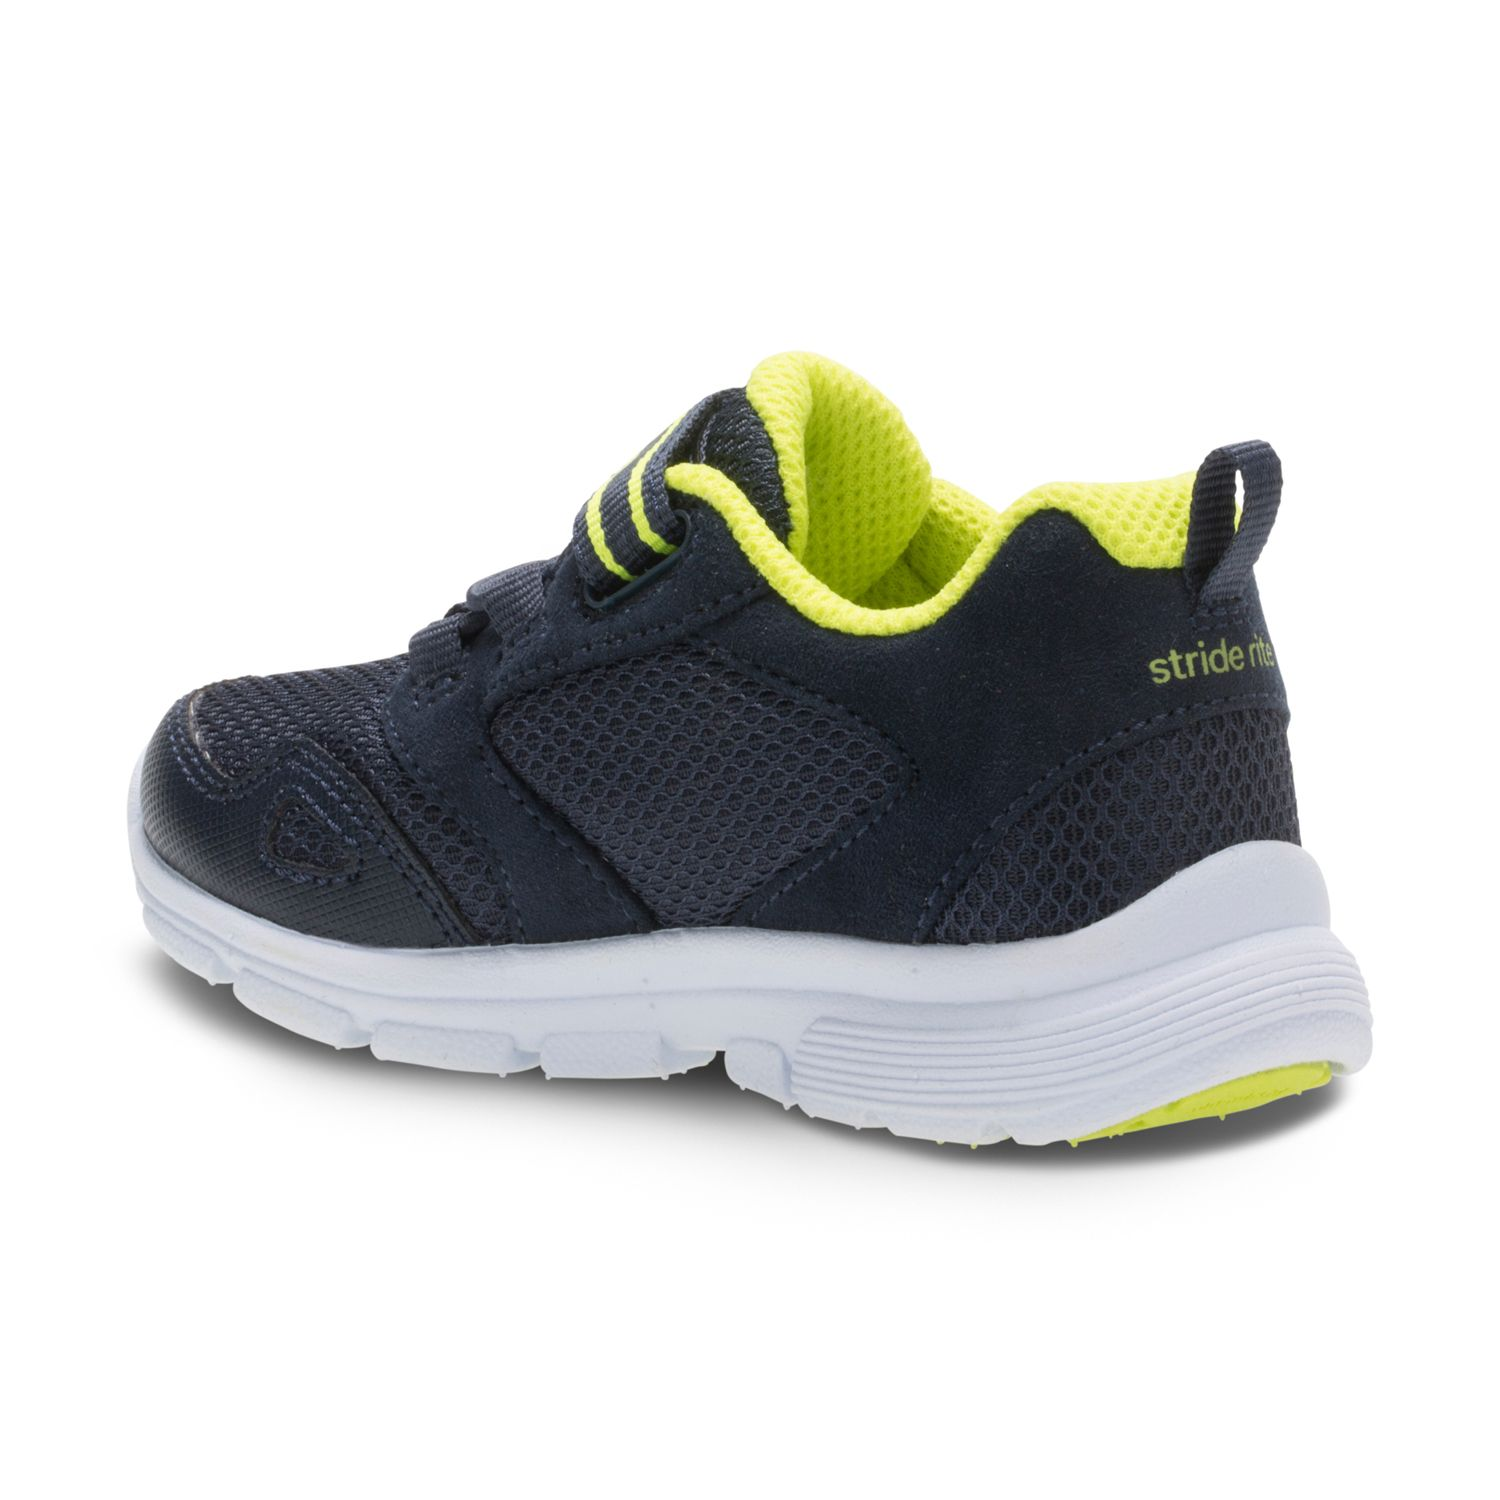 Stride Rite Shoes  e6005338ef5e0